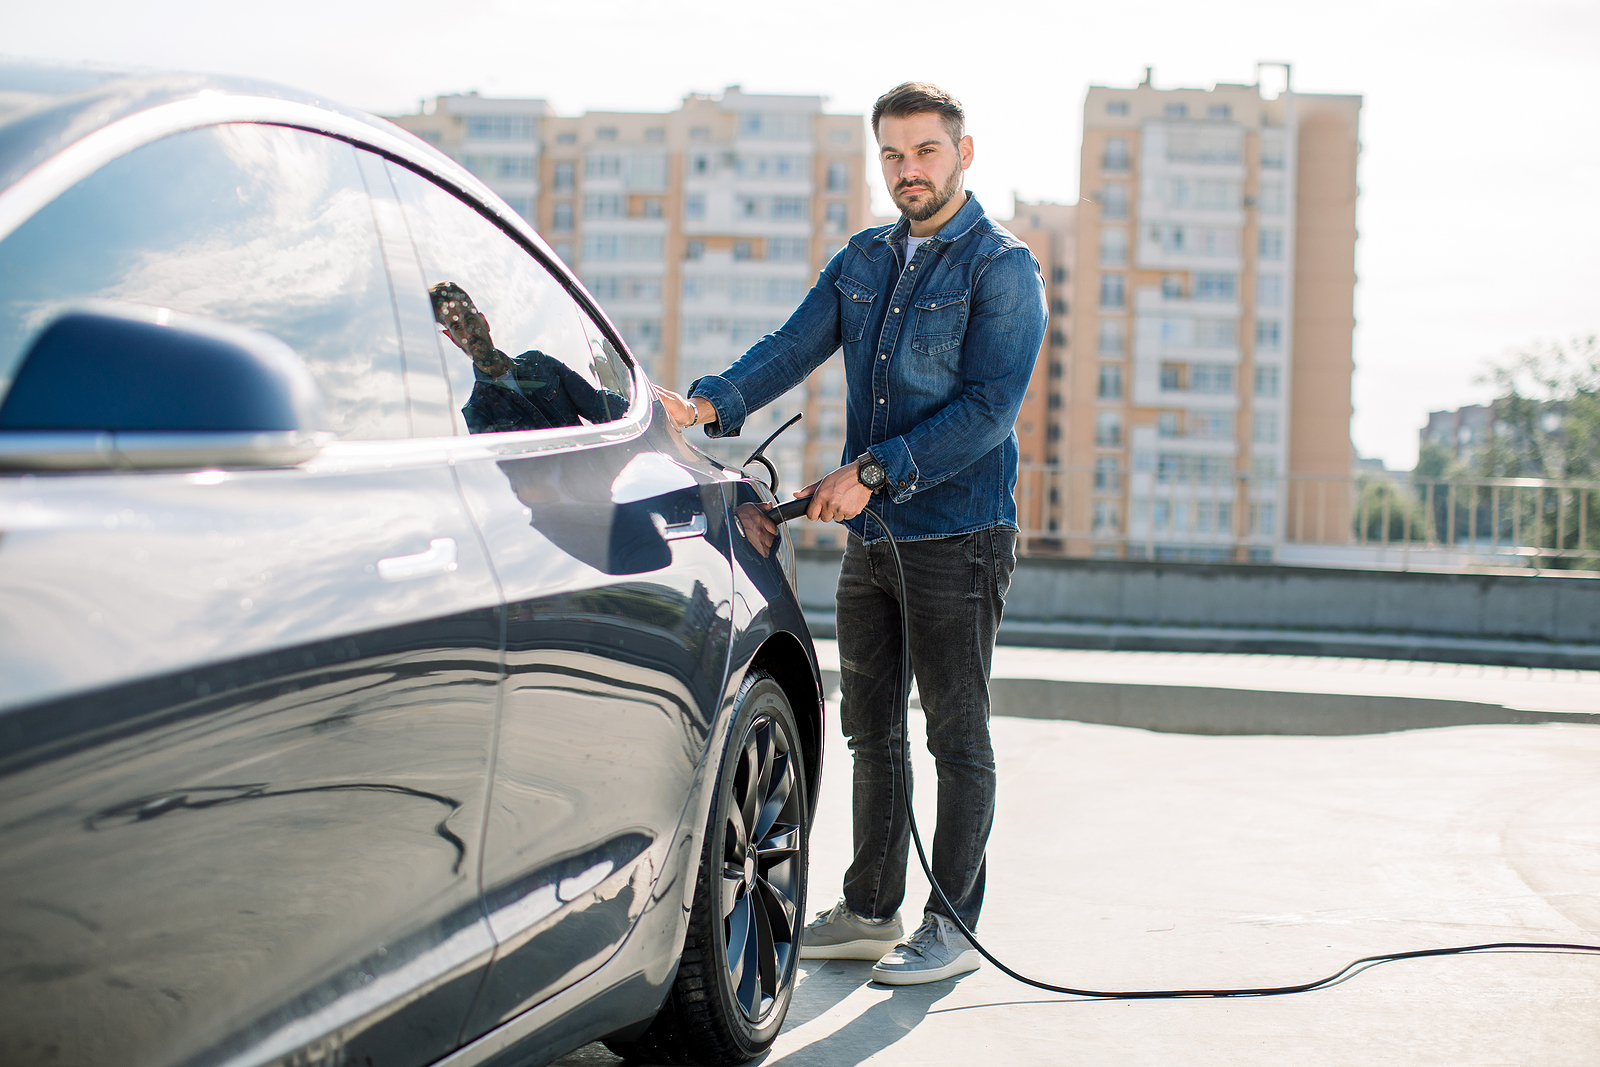 Personal Finance: Save Money By Maintaining Your Electric Car